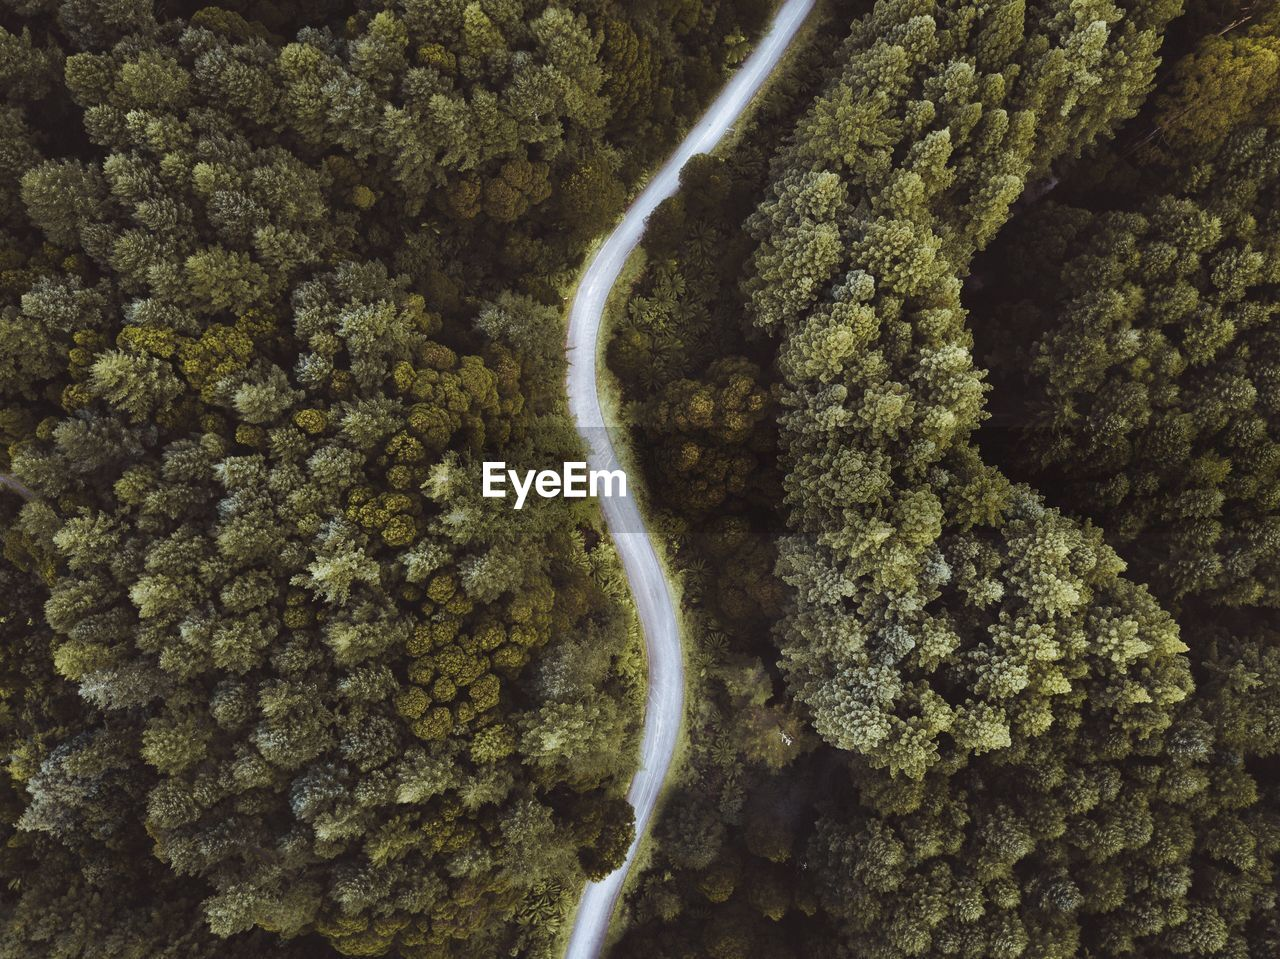 Drone view of curved road amidst trees